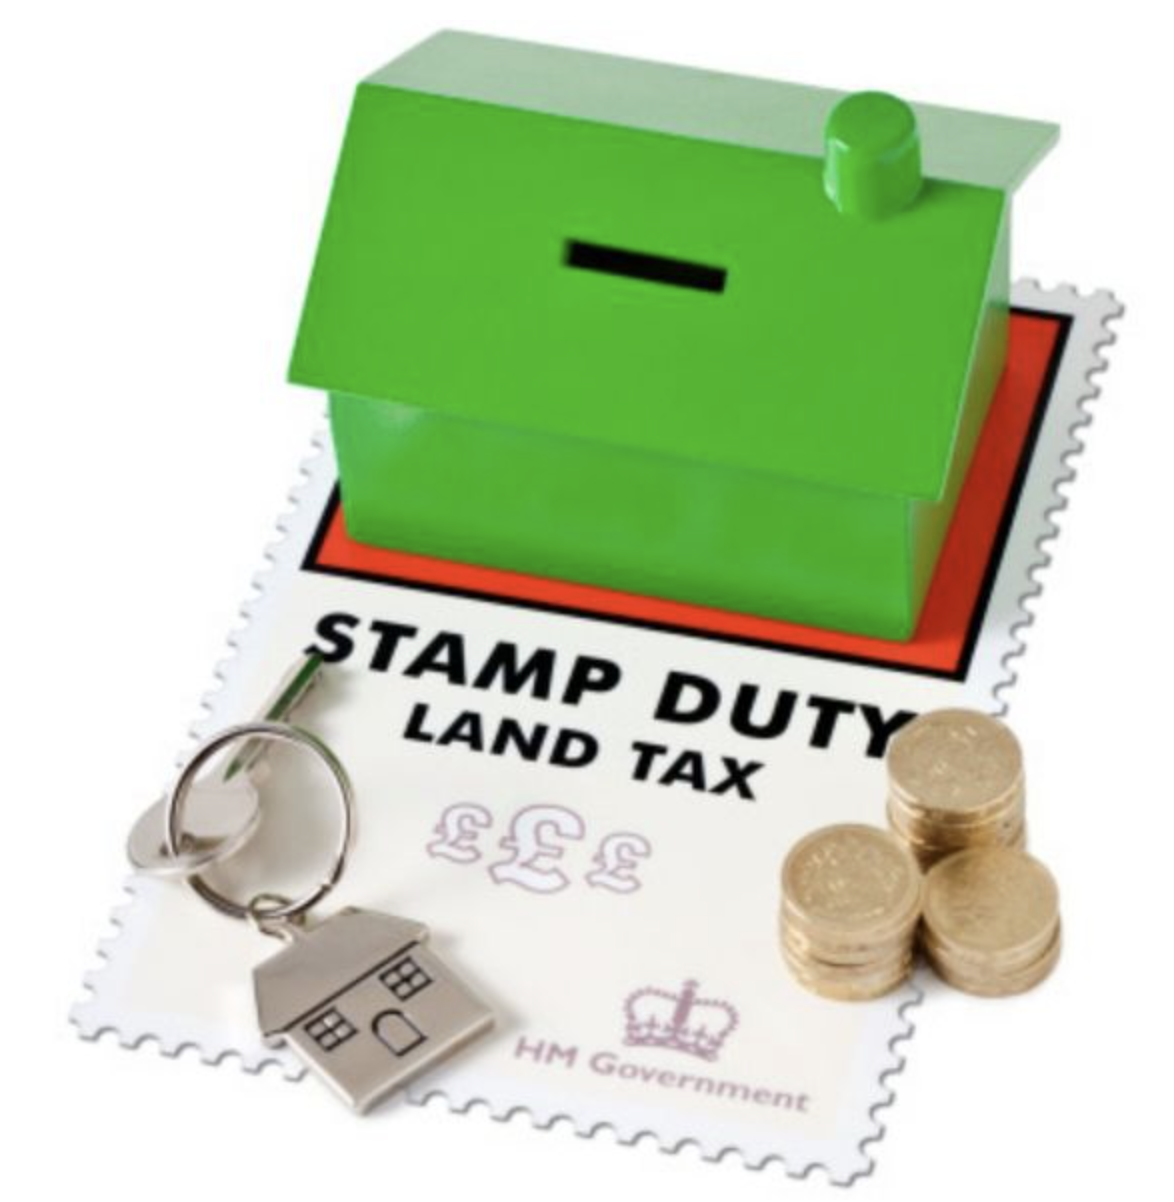 Phase 1 of Stamp Duty Holiday Ends – will the market suffer fall-through fever?